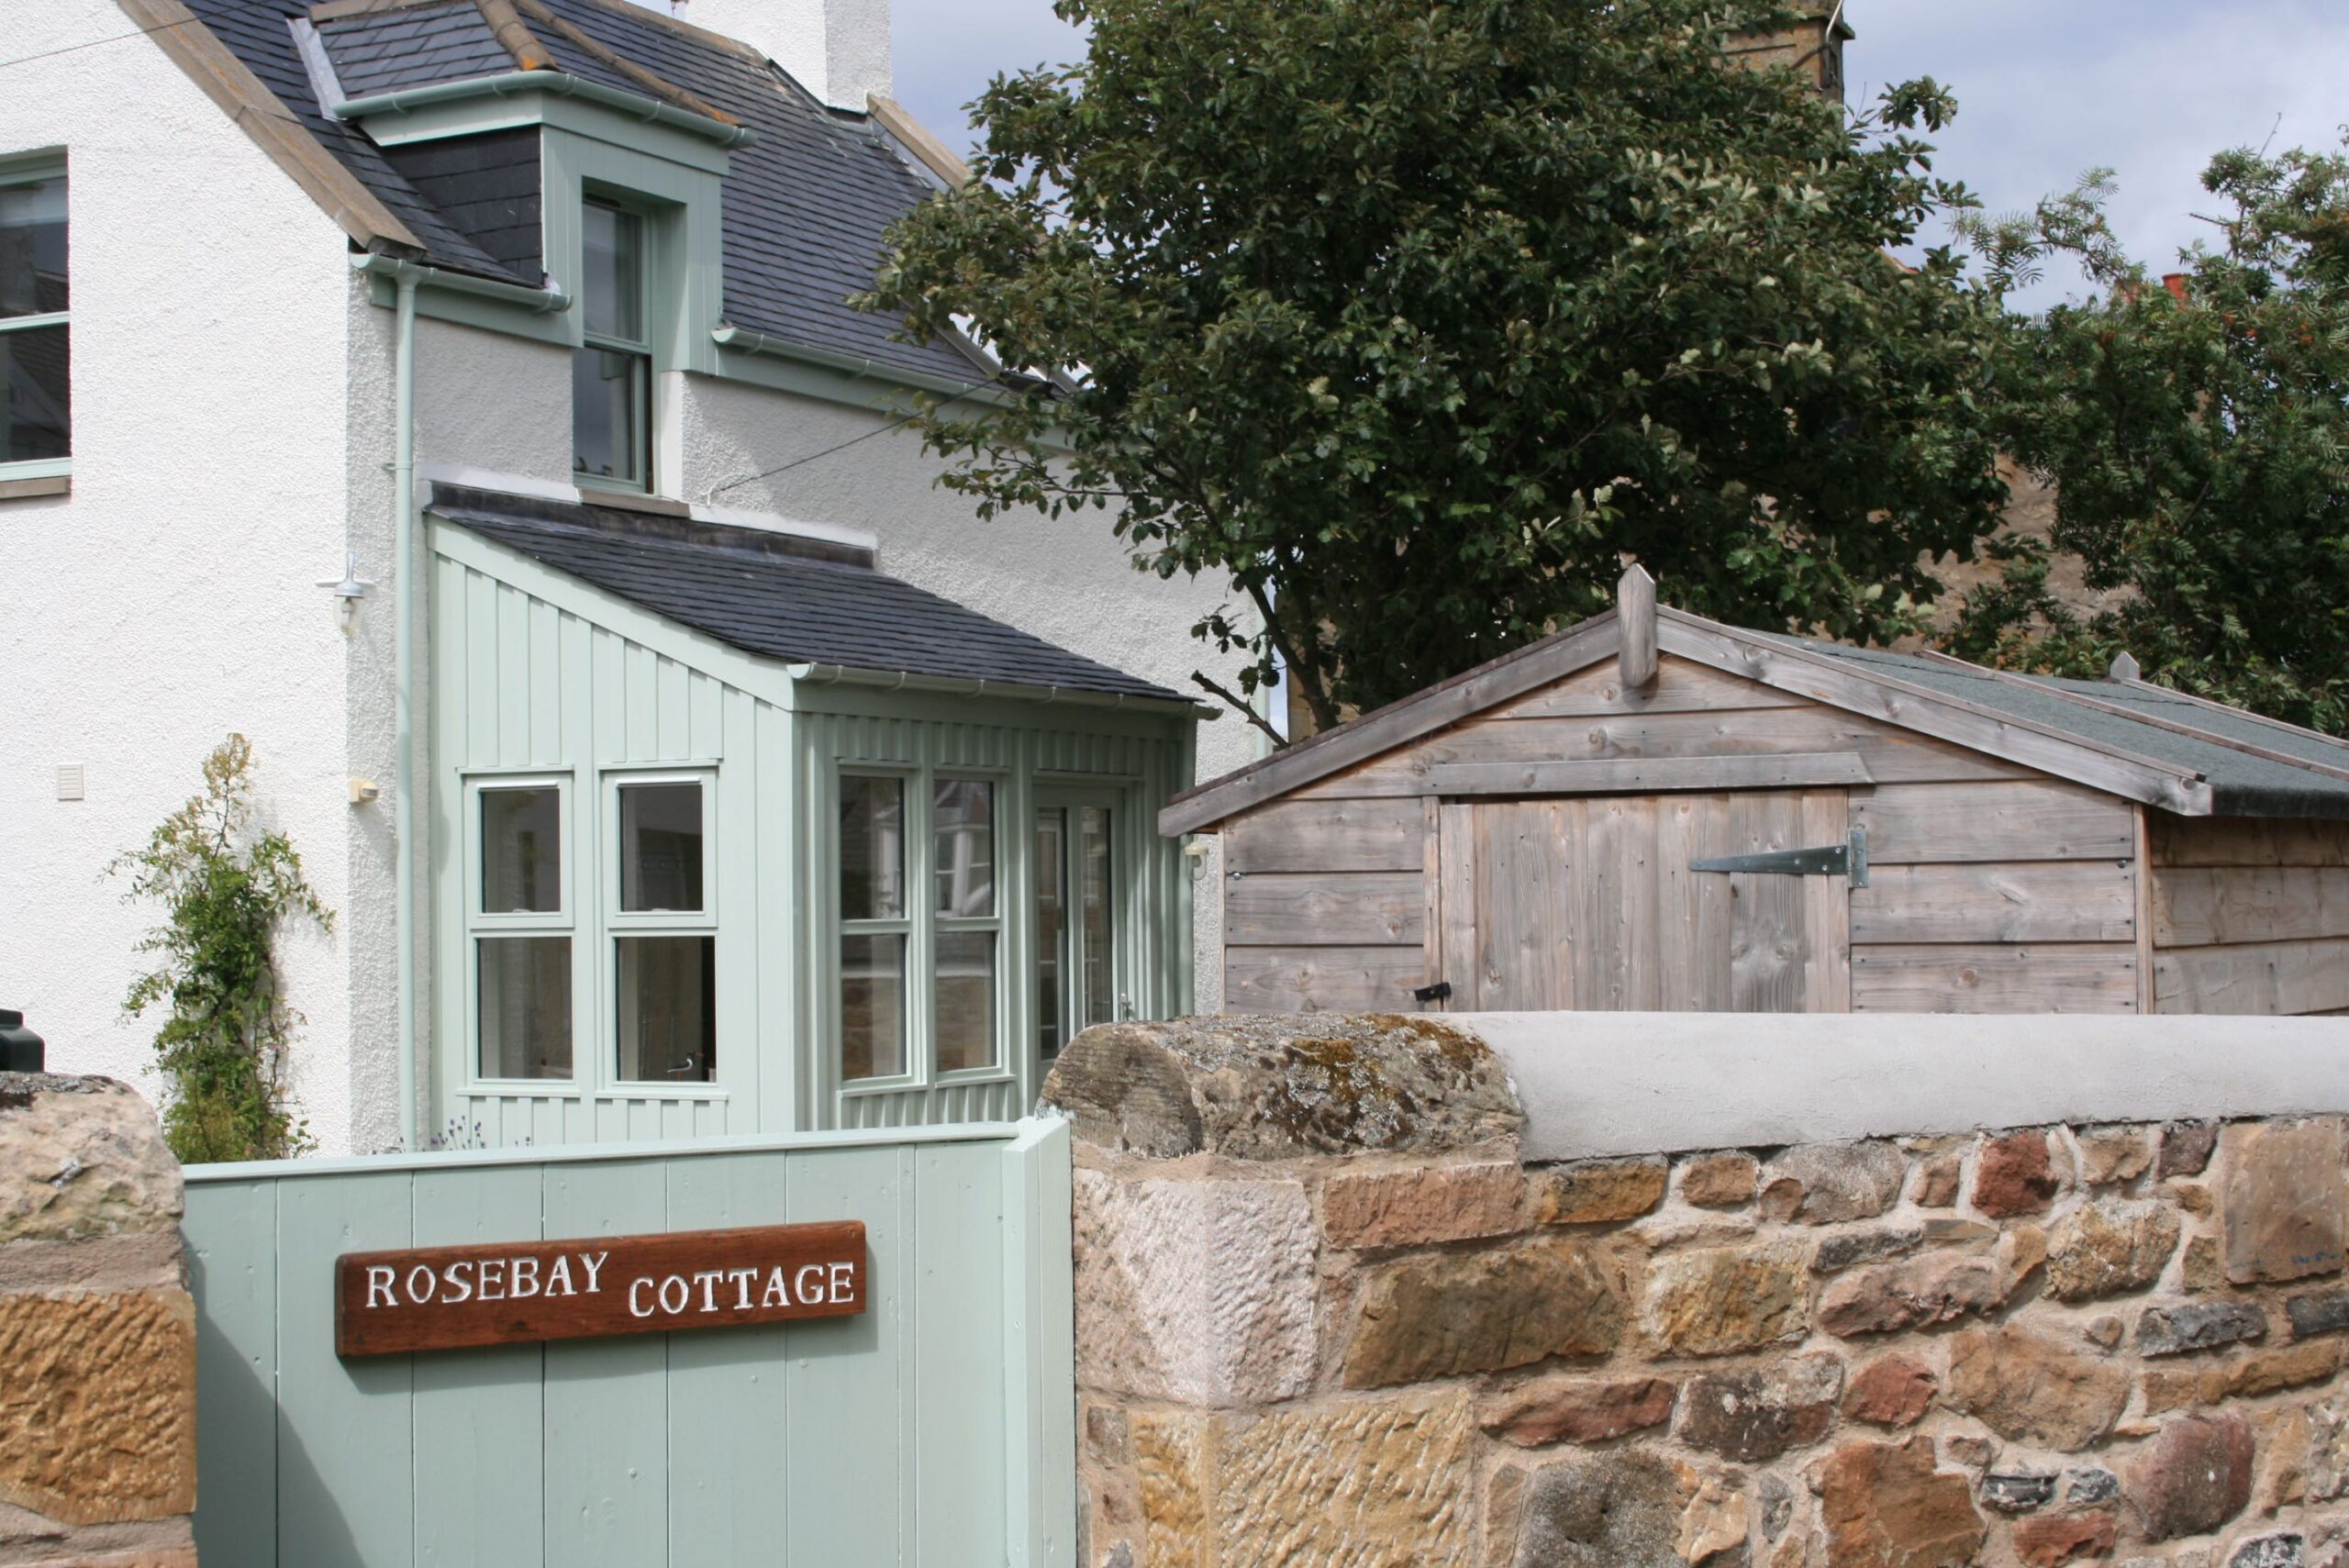 Rosebay Cottage front